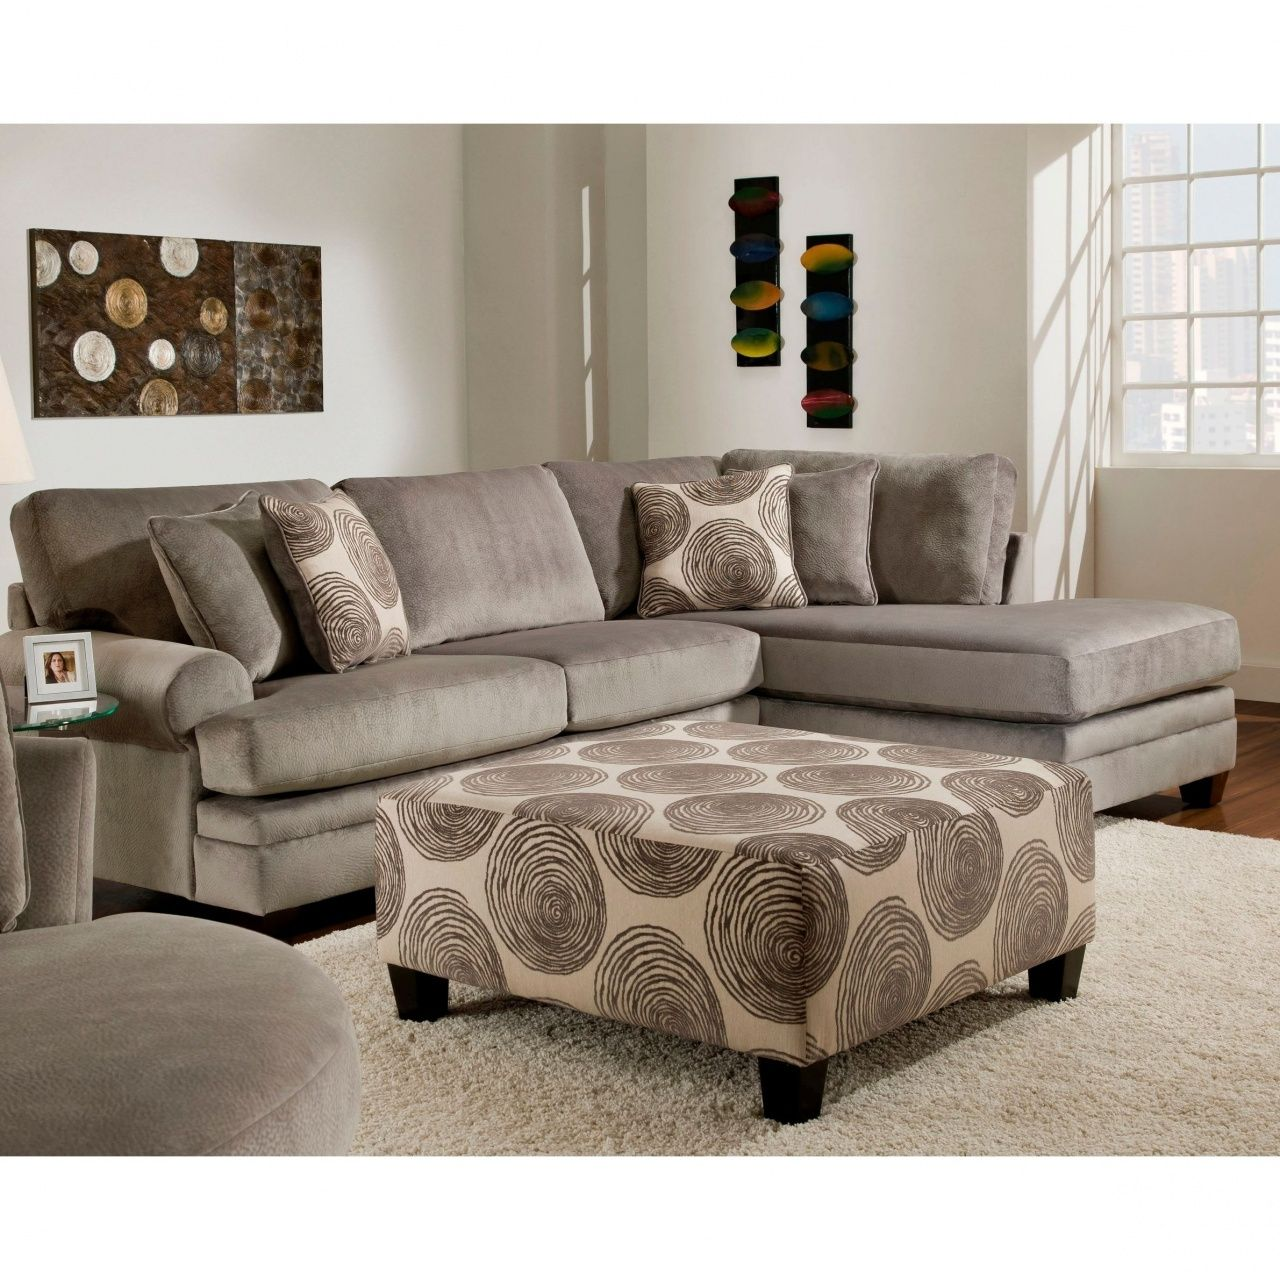 Sofa And Loveseat Sets Under 600 In